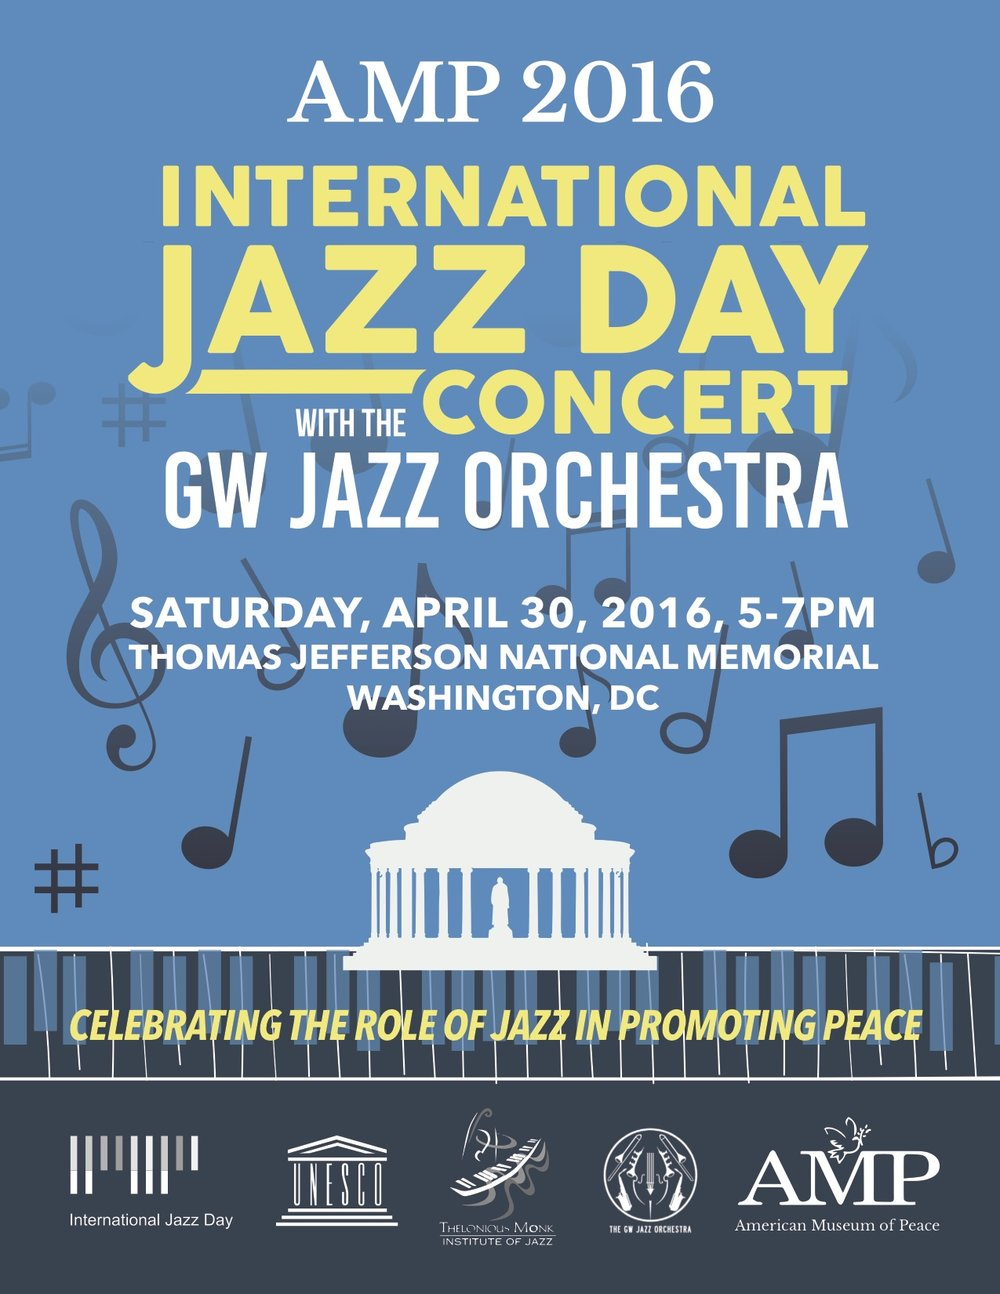 InternationalJazzDayConcert4.jpg